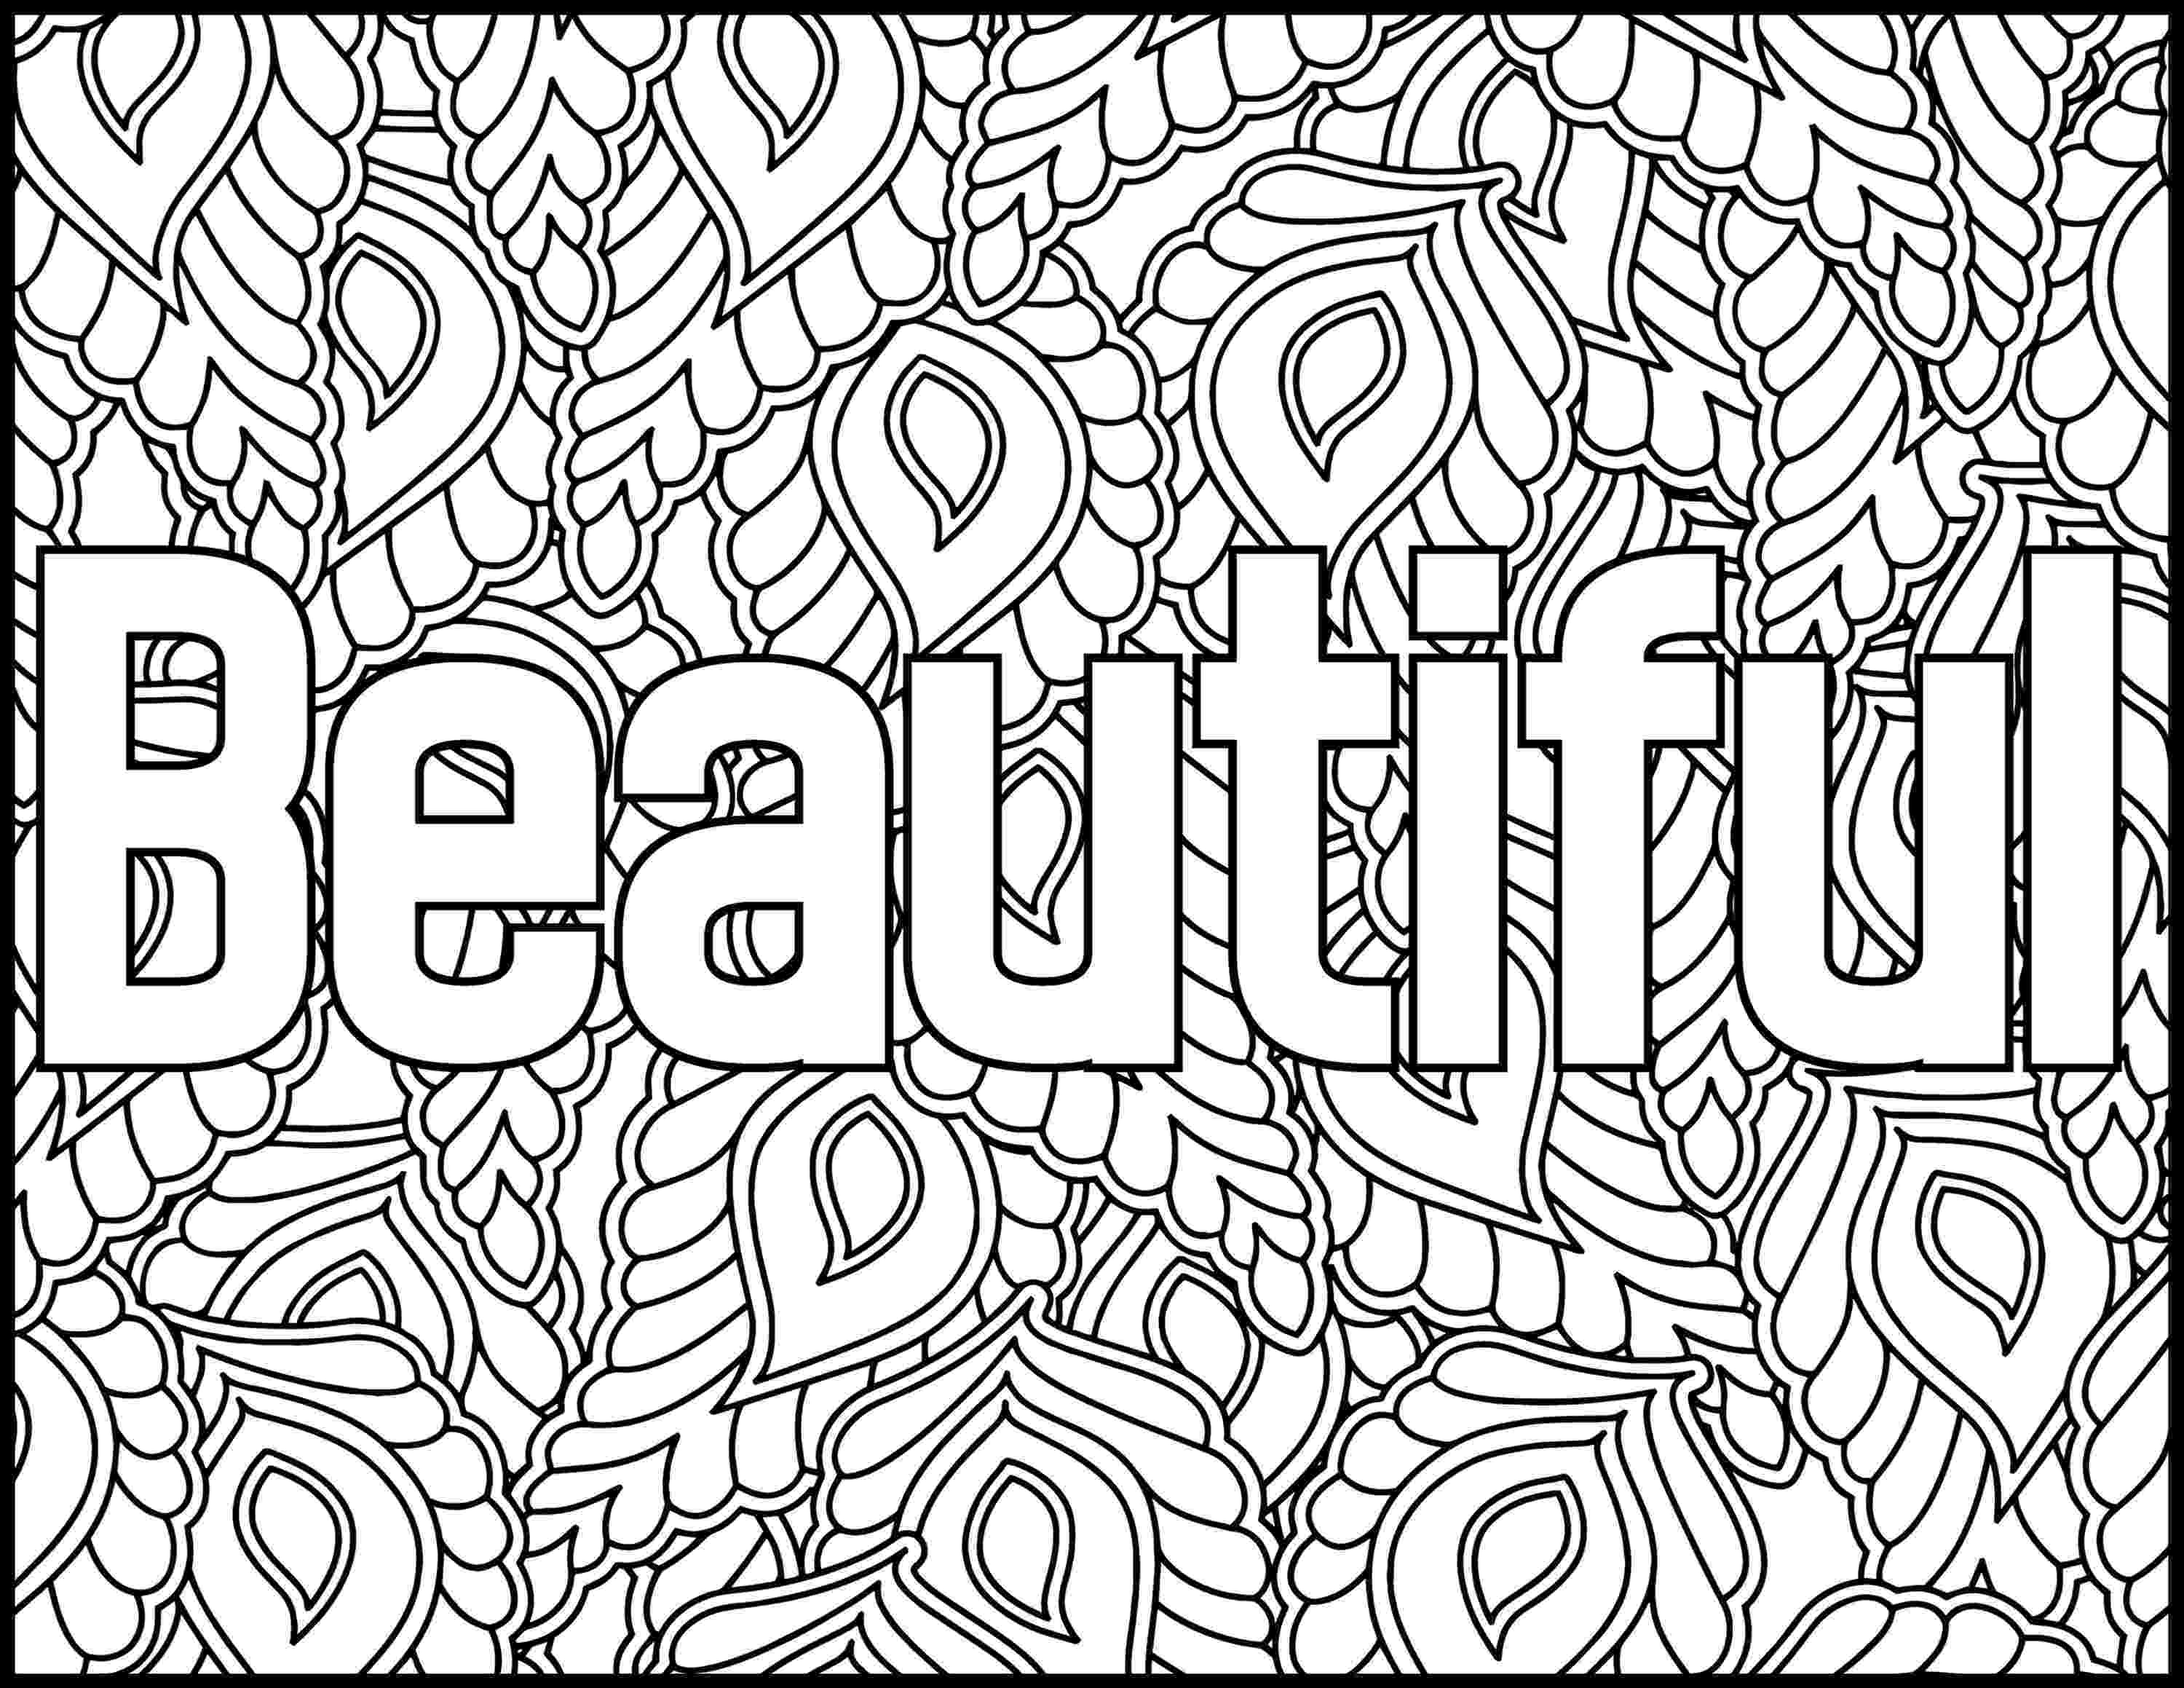 printable coloring quote pages for adults positive affirmations coloring pages for adults beautiful for adults printable pages quote coloring